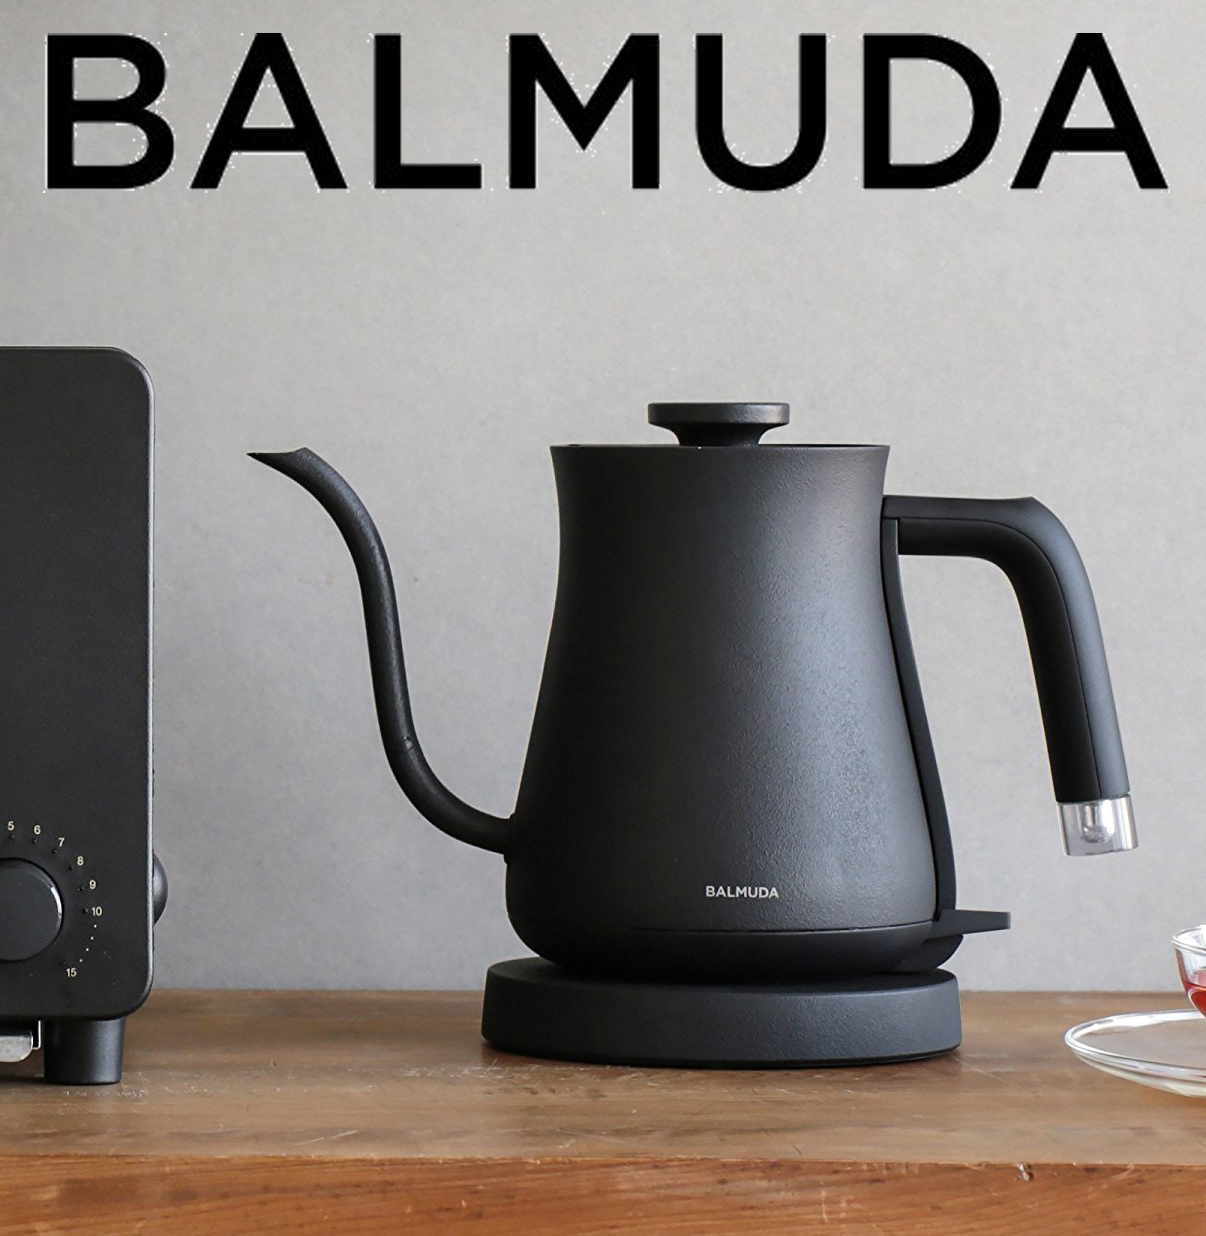 BALMUDA The Pot 電気ケトル (BK)